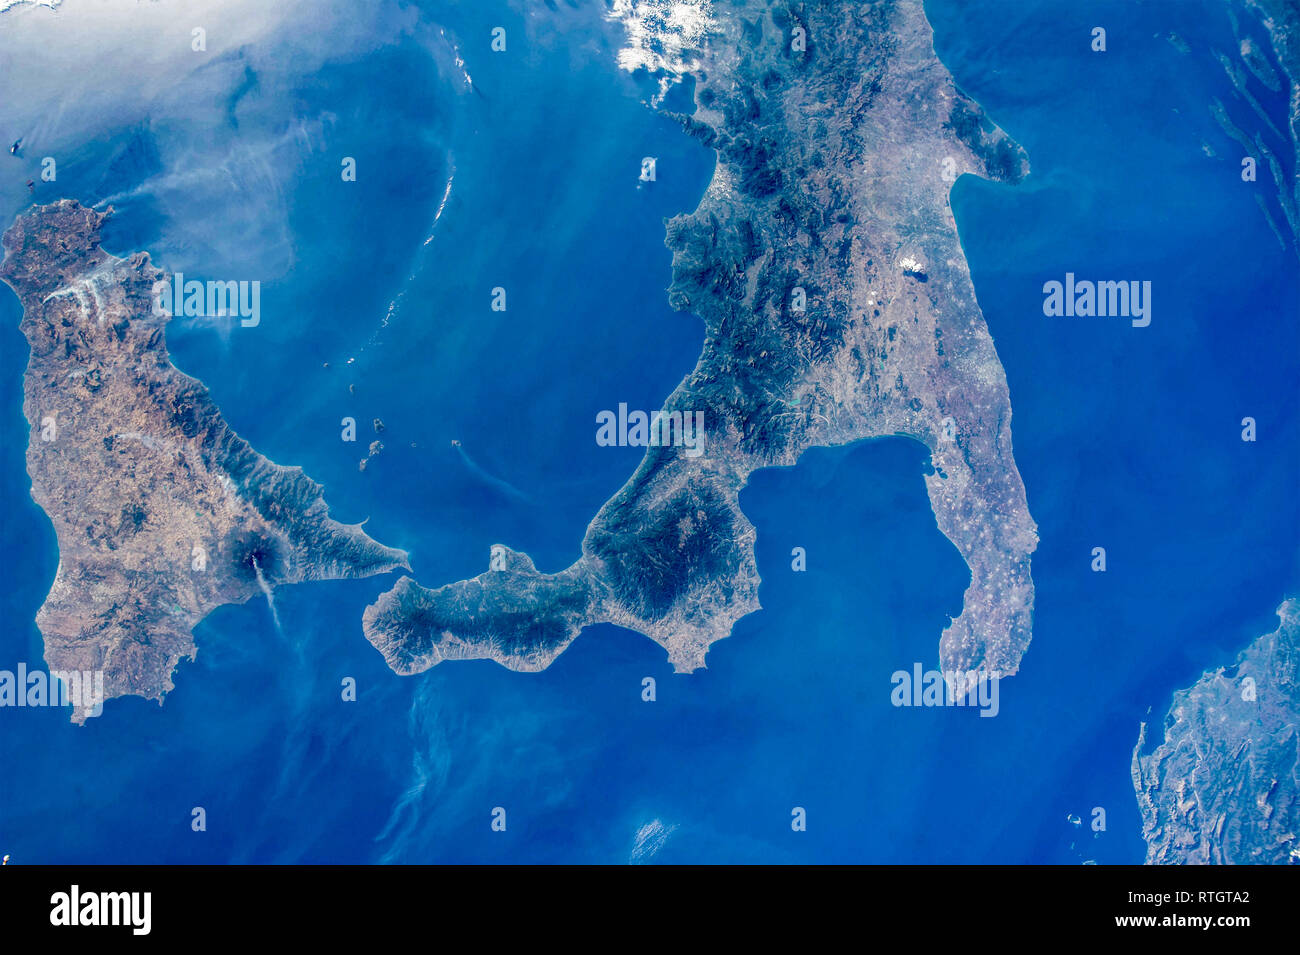 Cartina Sicilia Satellite.Satellite View Sicily High Resolution Stock Photography And Images Alamy